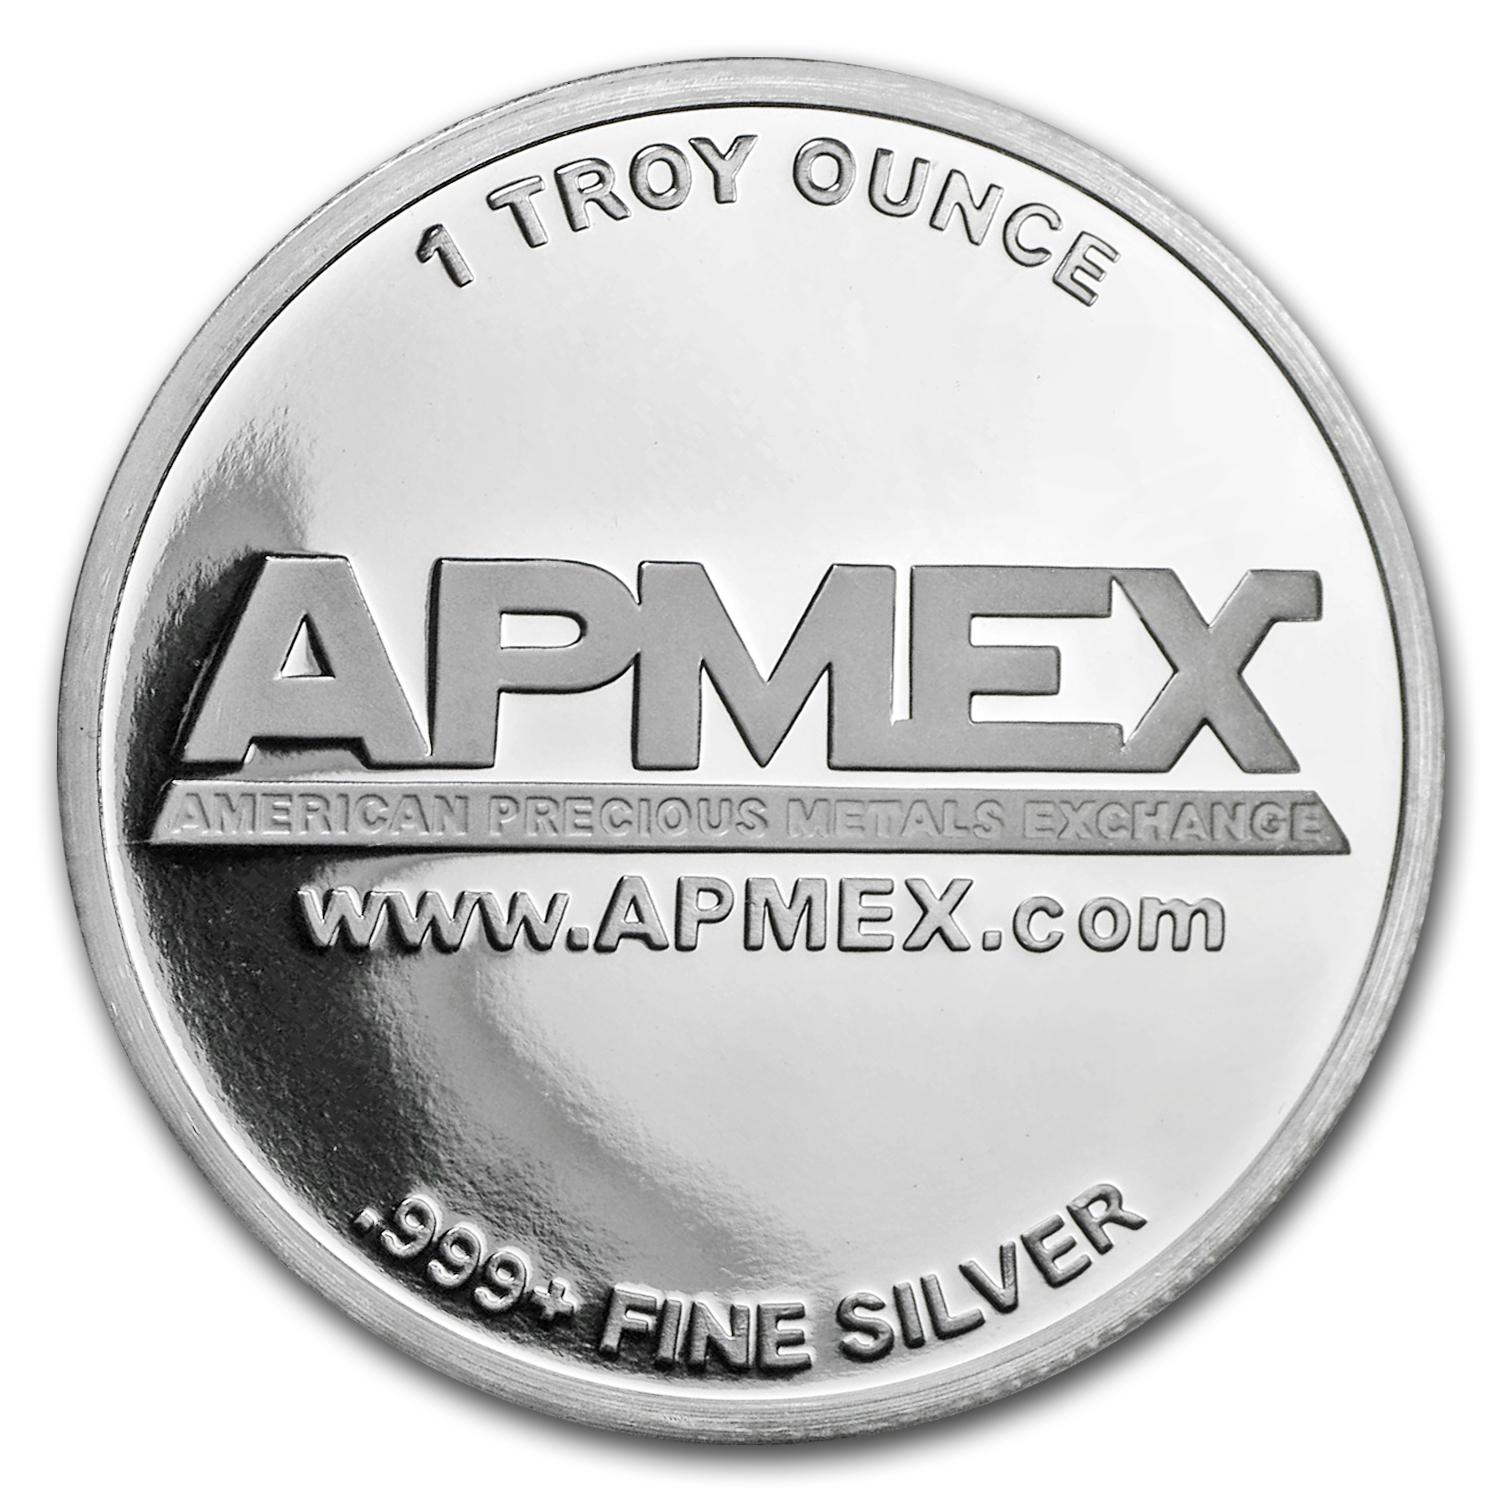 1 oz Silver Colorized Round - APMEX (Mother's Day - Floral)